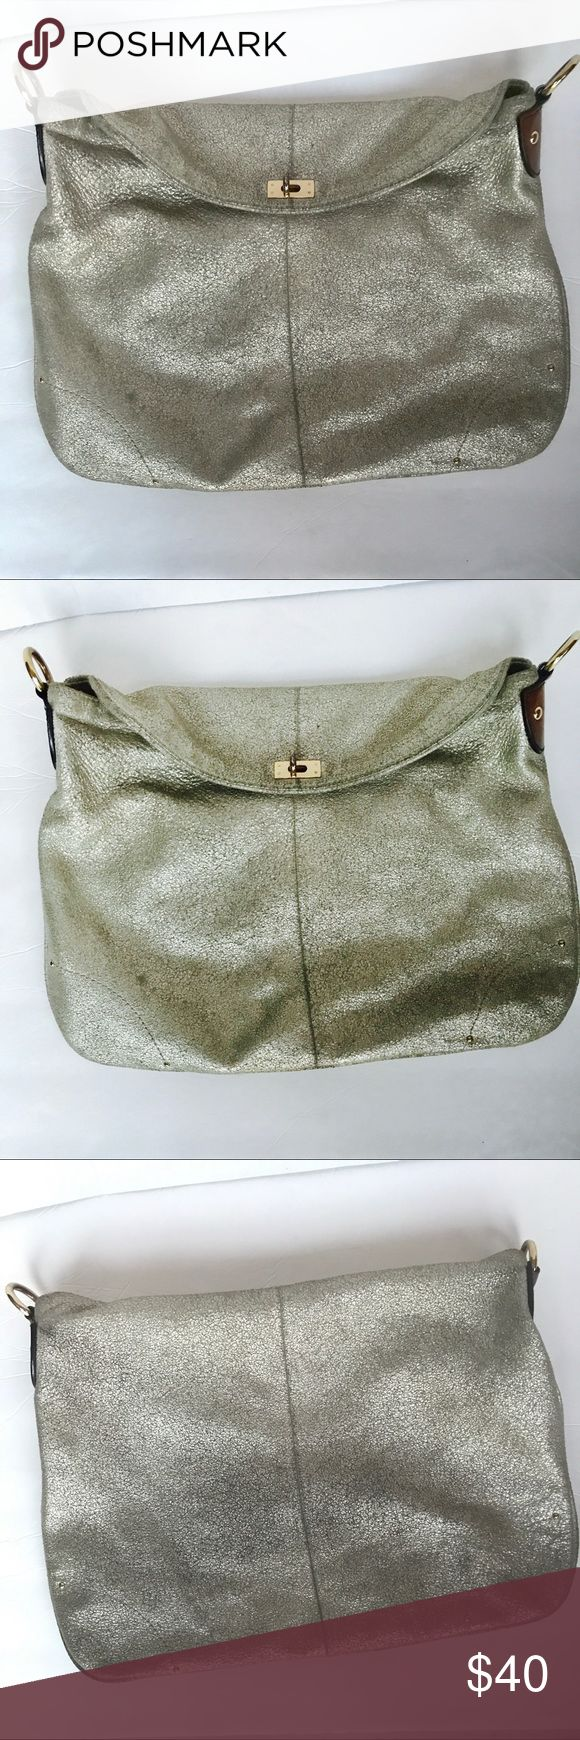 J. CREW Silver Metallic Leather Bag -Missing Strap This metallic silver shoulder bag with brown leather trim by J. Crew is previously owned in Very Good Used Condition. The shoulder Strap and Dust Bag are no longer available, however this bag can still be used as a great clutch.  DESCRIPTION: Metallic Silver Shoulder / Clutch Bag with Mineral Finish. Gold-tone hardware including the turn-lock mechanism. The interior is lined with beige fabric and includes a zip pocket. MEASUREMENTS…